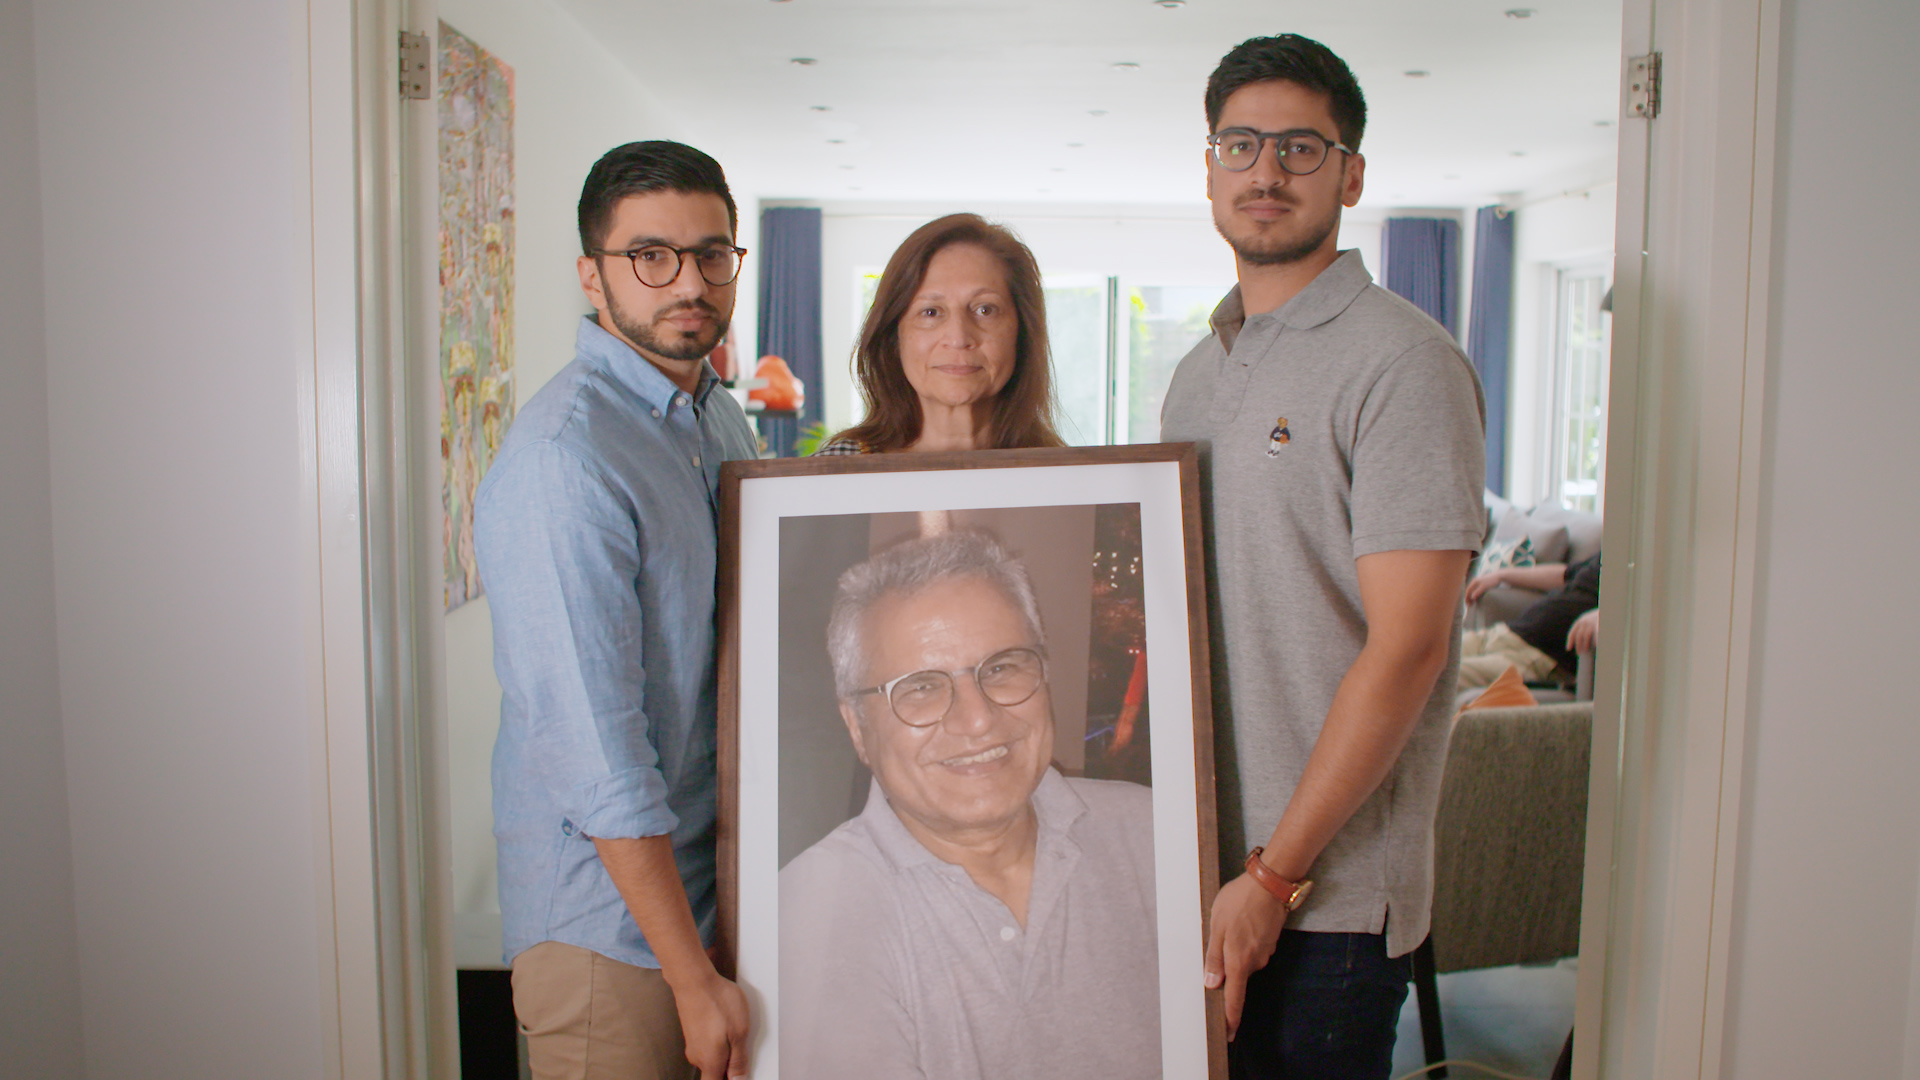 The Kakkad family with a photo of father, Bharat, who died and donated his organs early in 2019